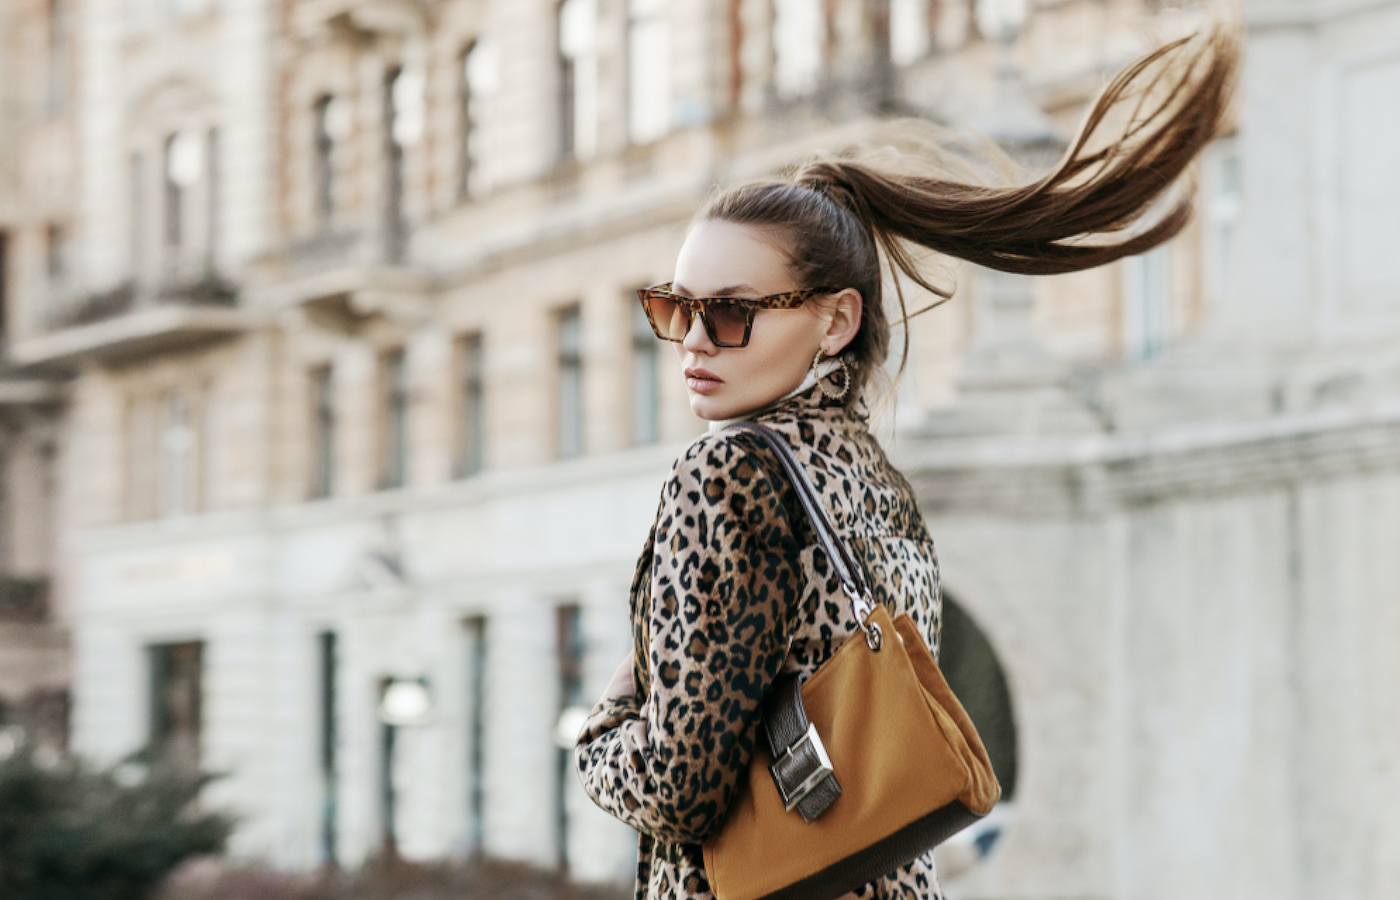 Best animal print items for winter 2019